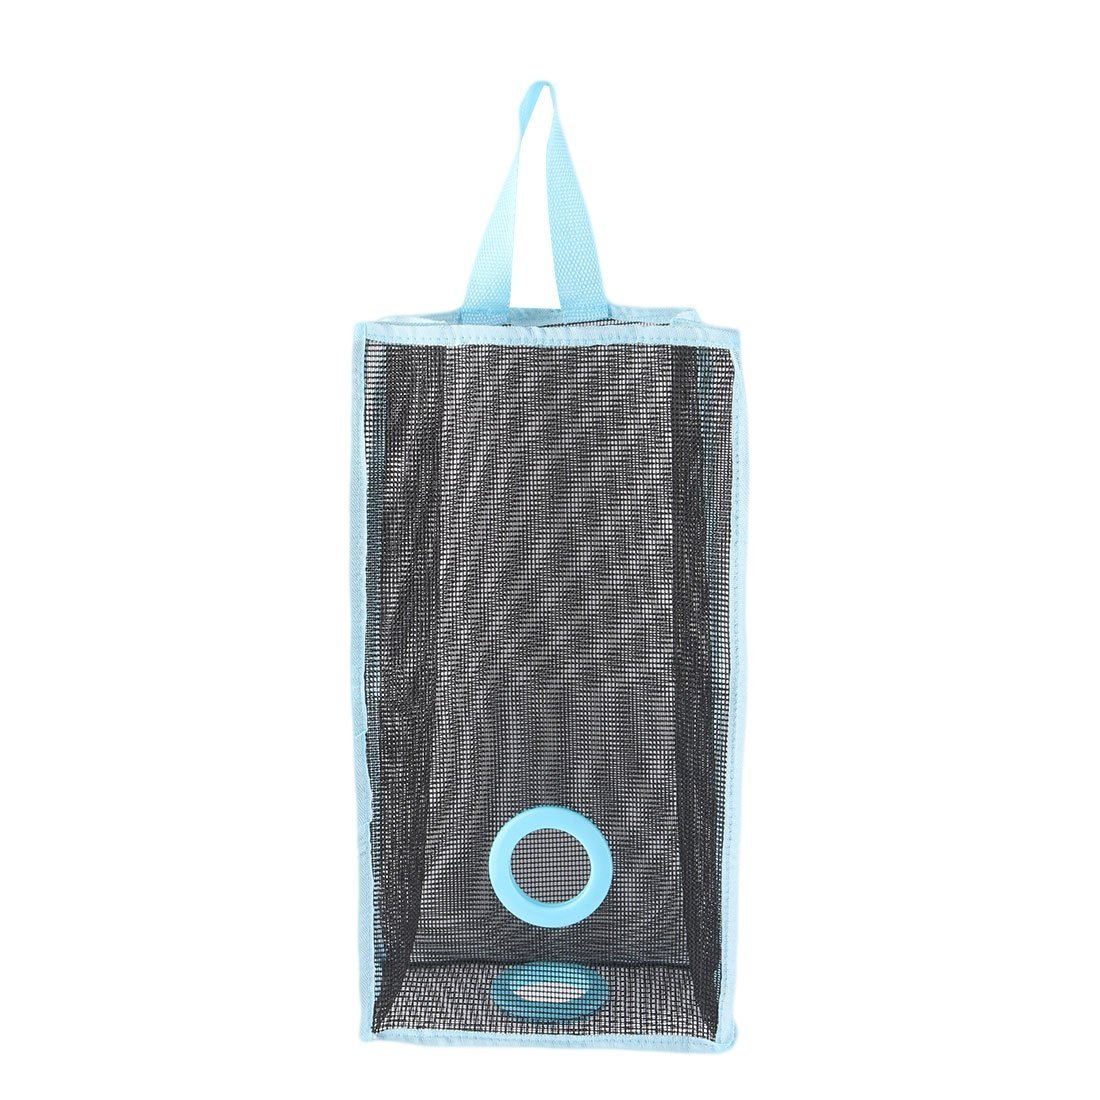 uxcell PVC Mesh Kitchen Bathroom Wall Hanging Grocery Bag Holder Storage Container Blue